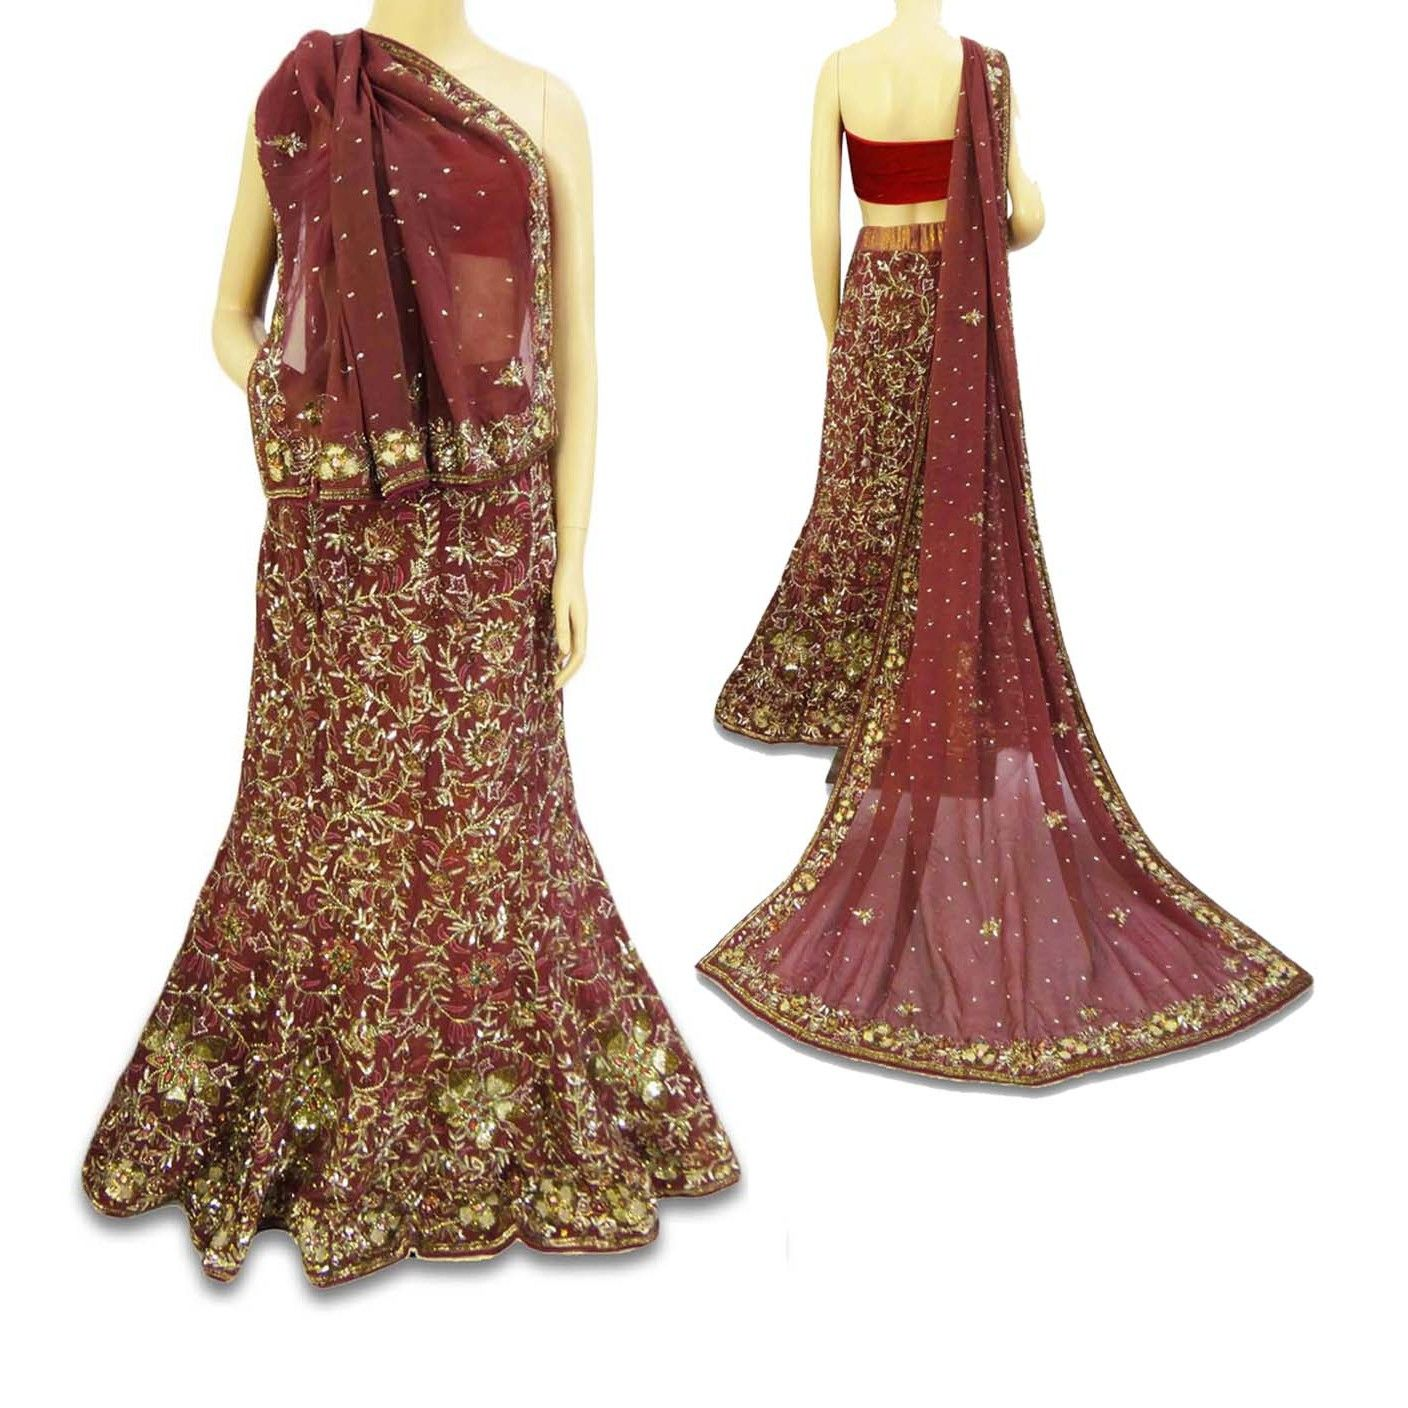 Wedding dresses asia  India vintage bridal lehenga and dupatta silk georgette with heavy